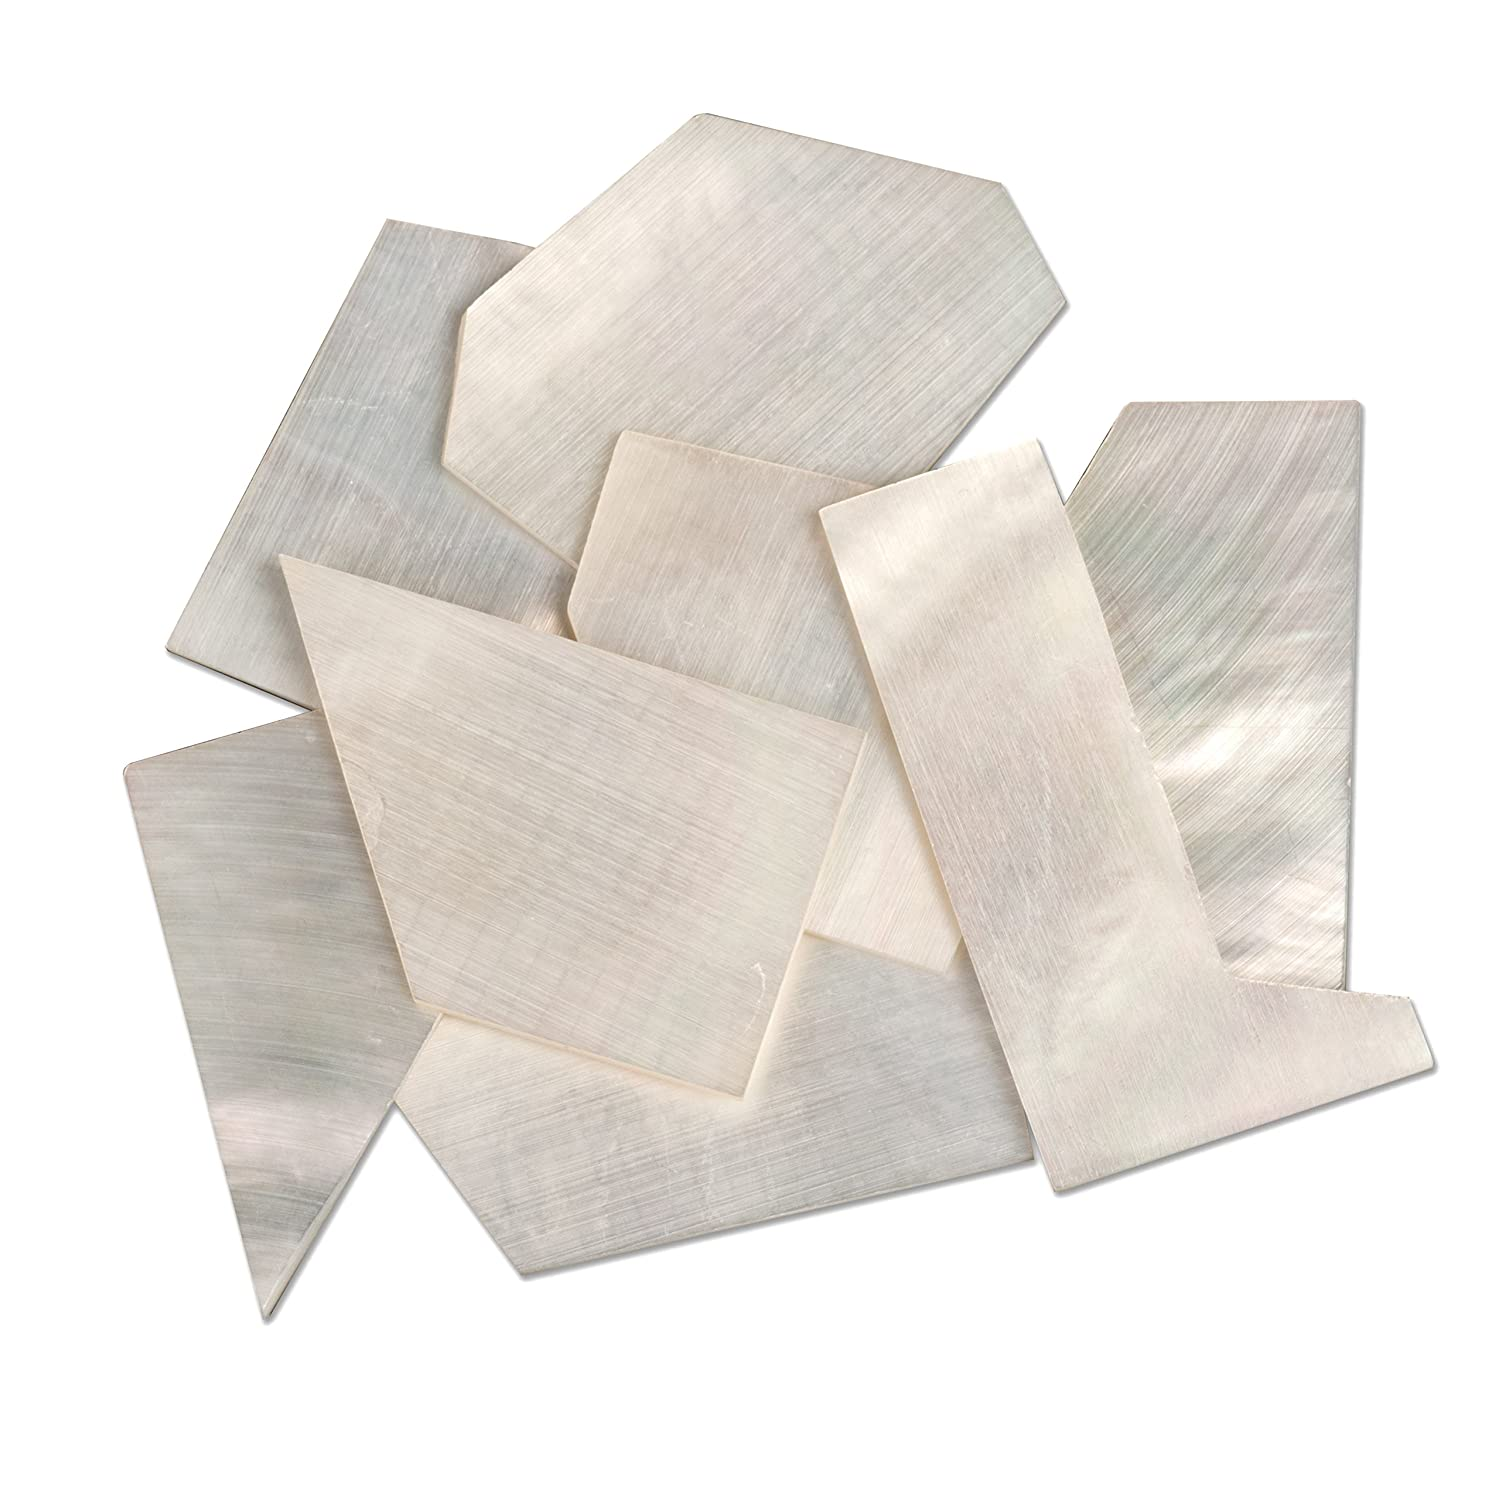 StewMac Pearl Inlay Blanks - 1oz Pack, White mother-of-pearl #AN0950